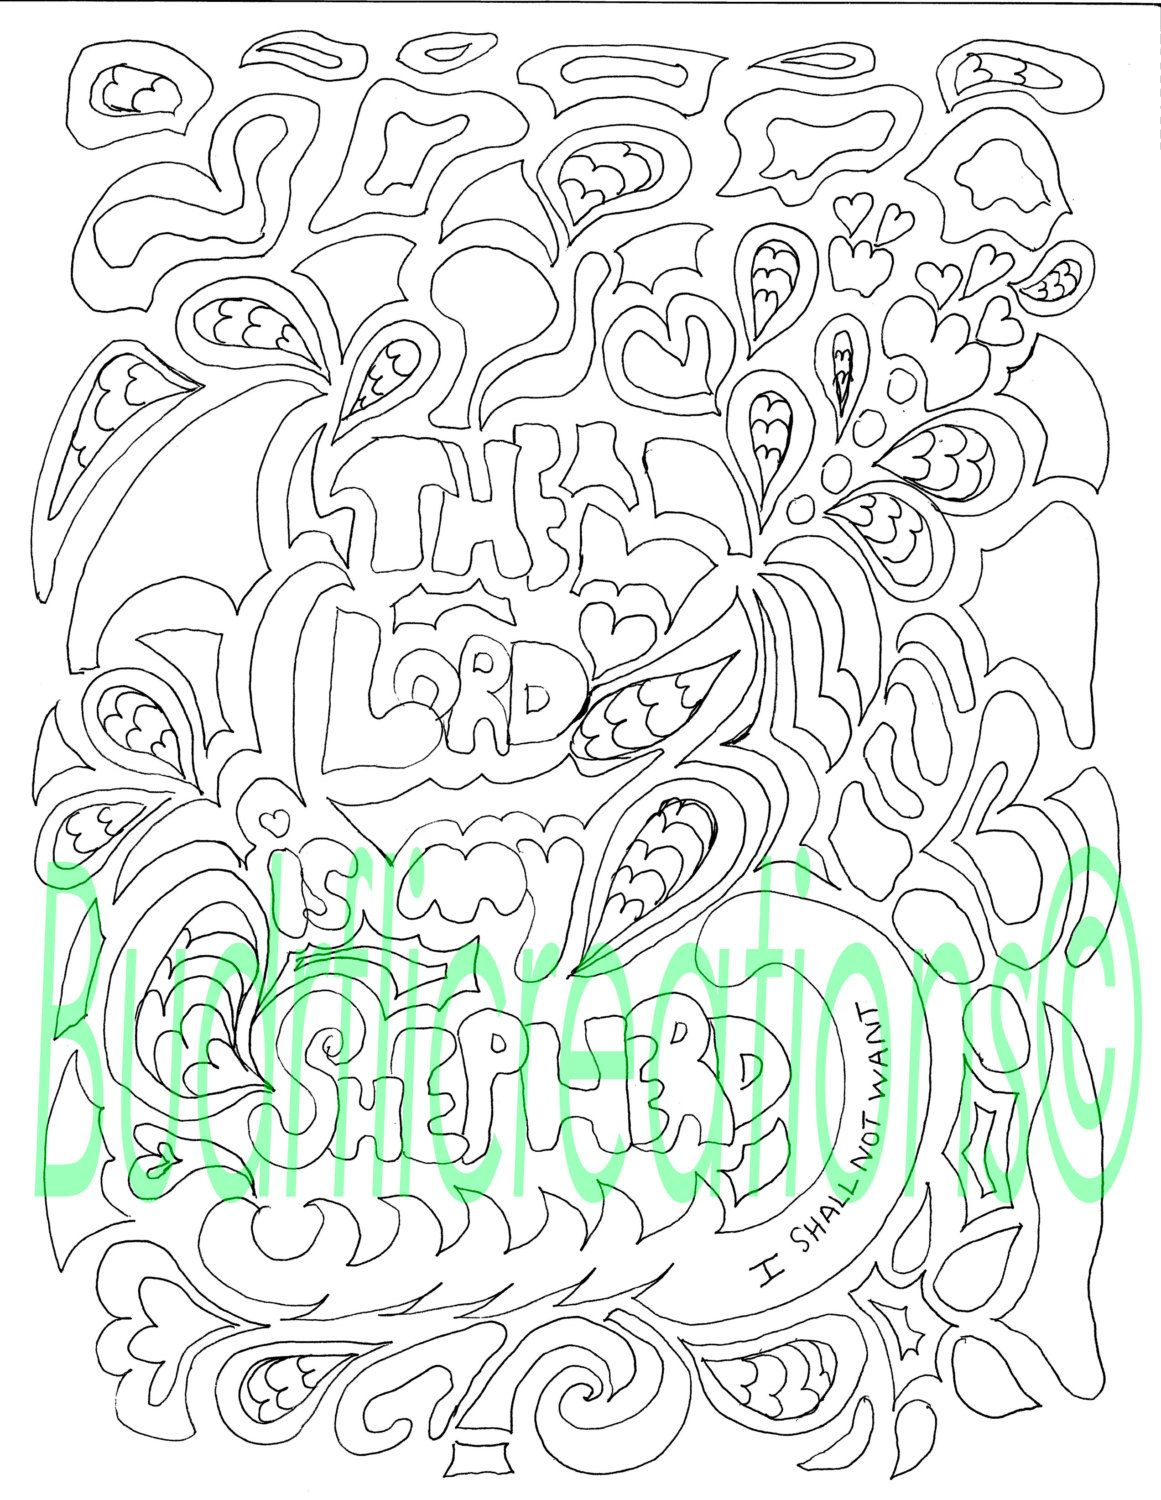 Psalms 23 The Lord is My Shepherd Adult Coloring Page Digital ...